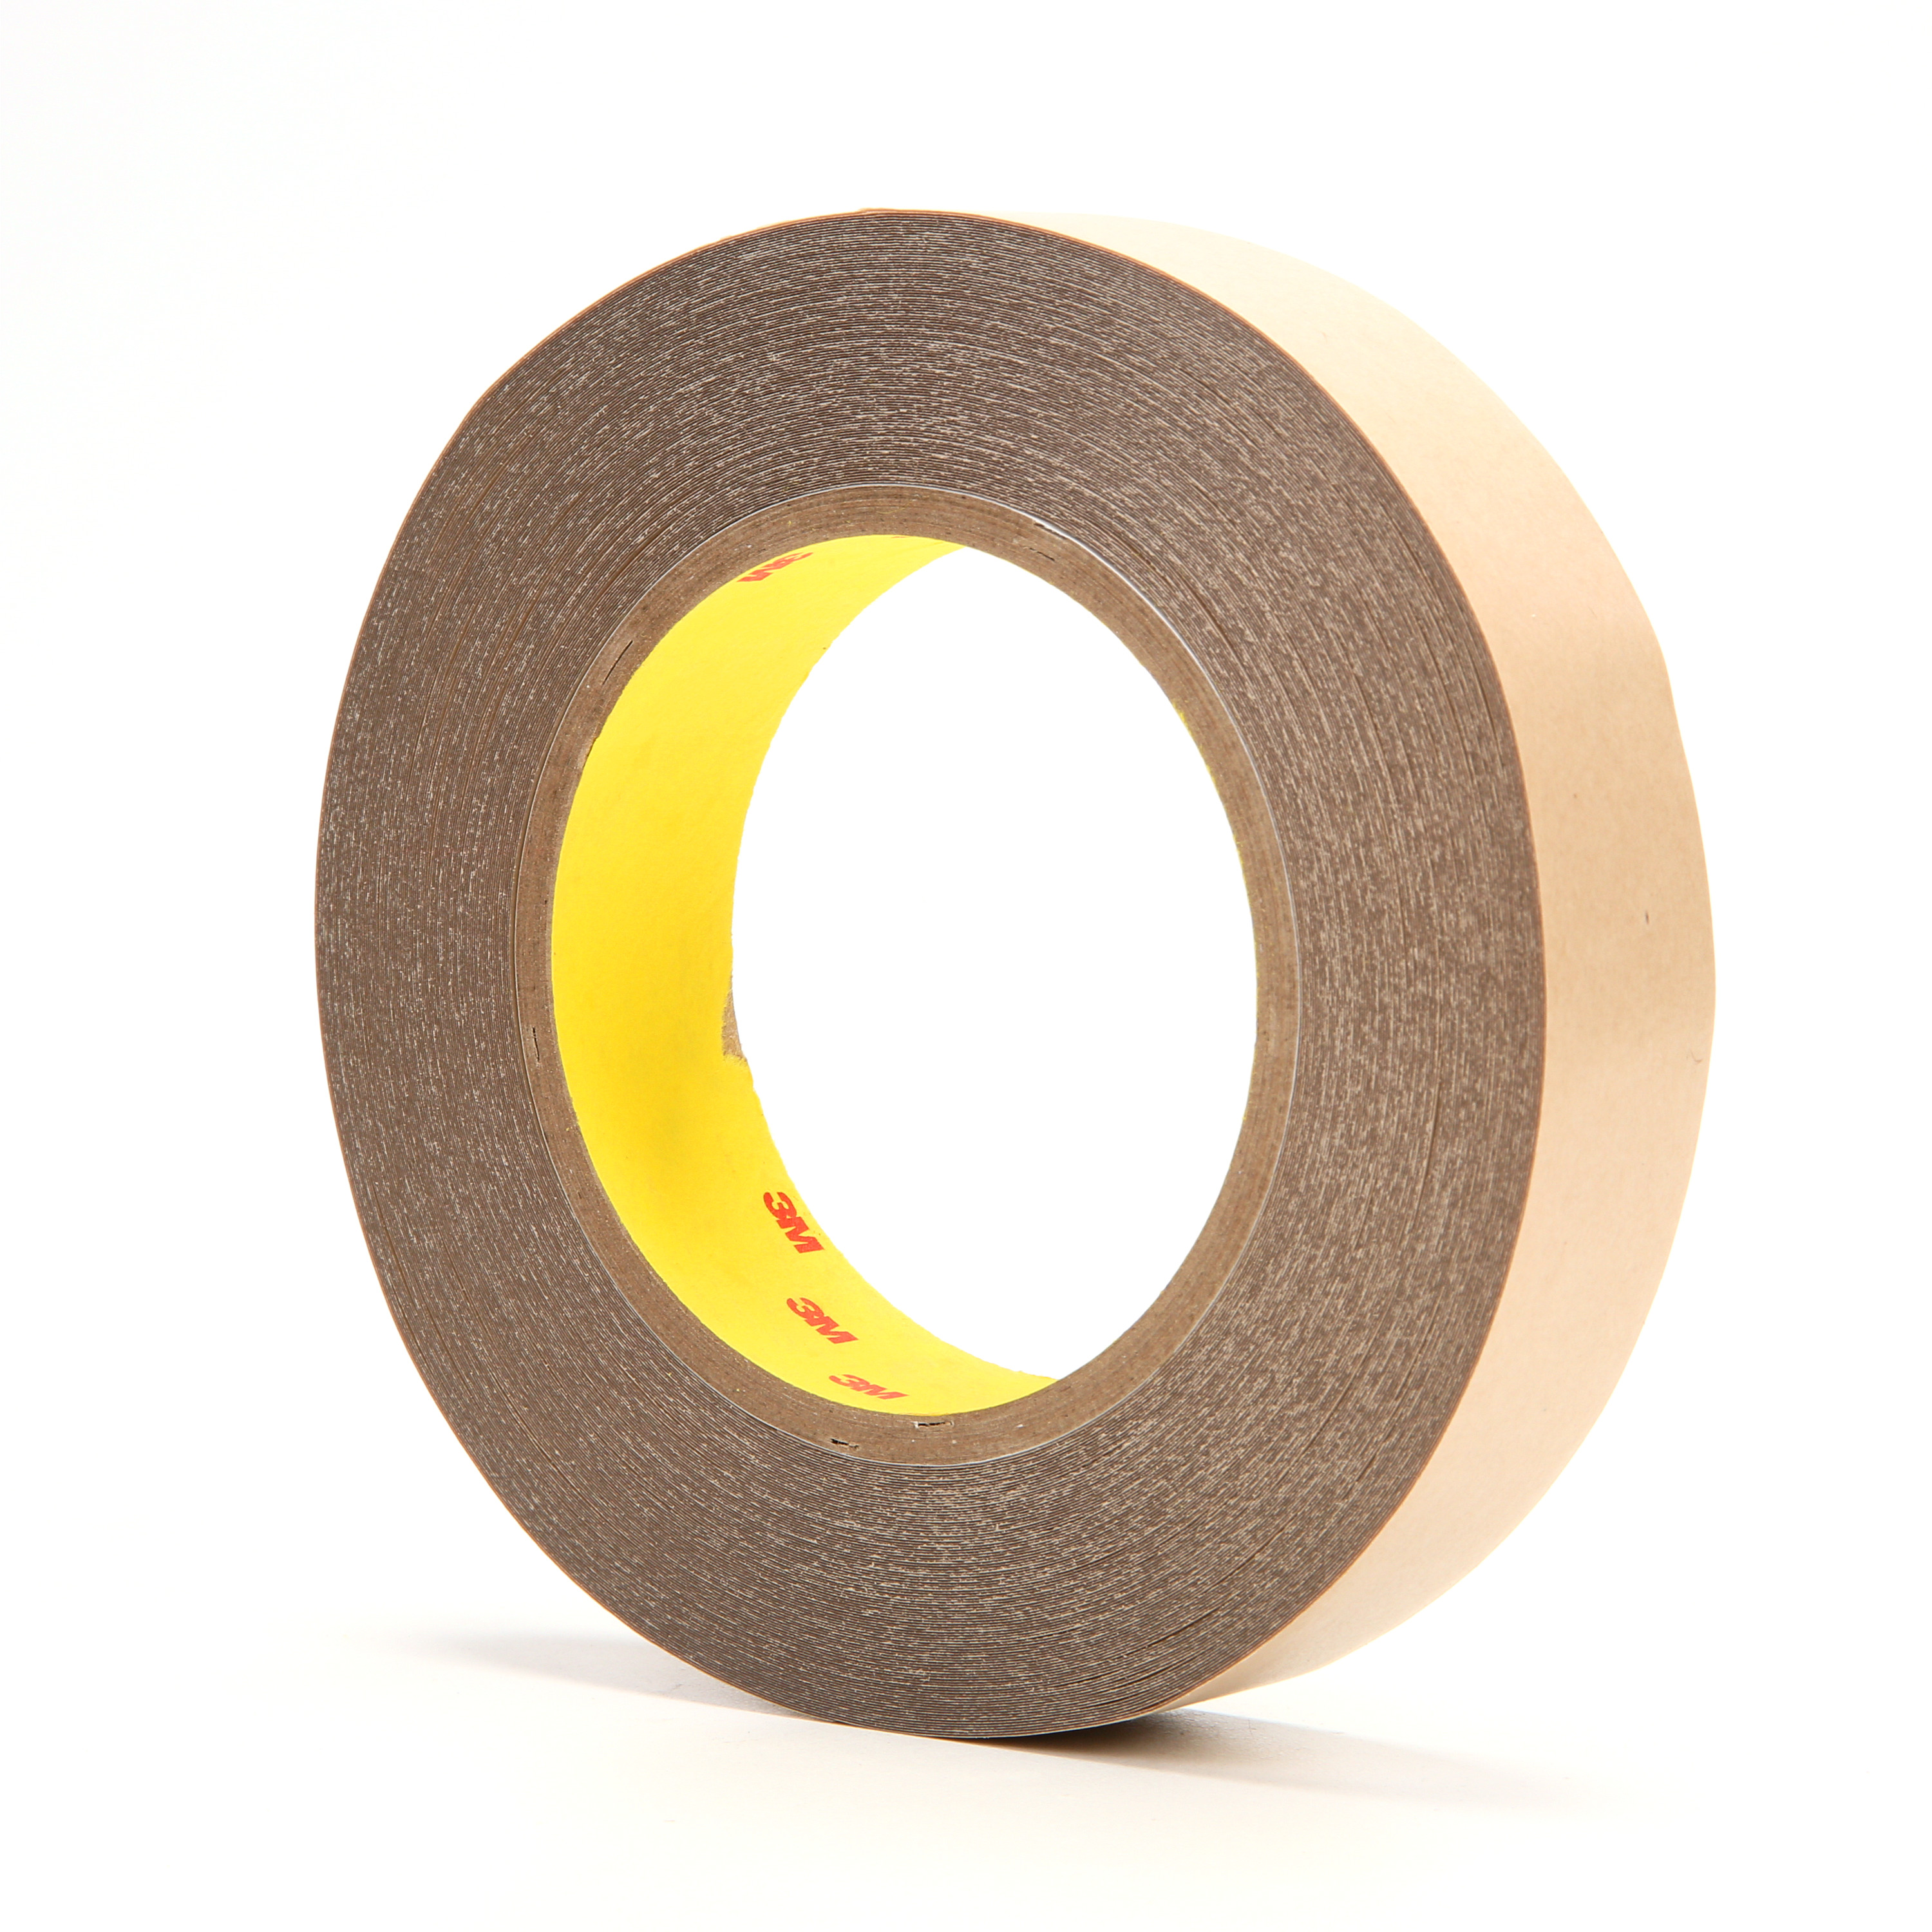 3M™ Double Coated Tape 9500PC, Clear, 1 in x 36 yd, 5.6 mil, 36 rolls per case